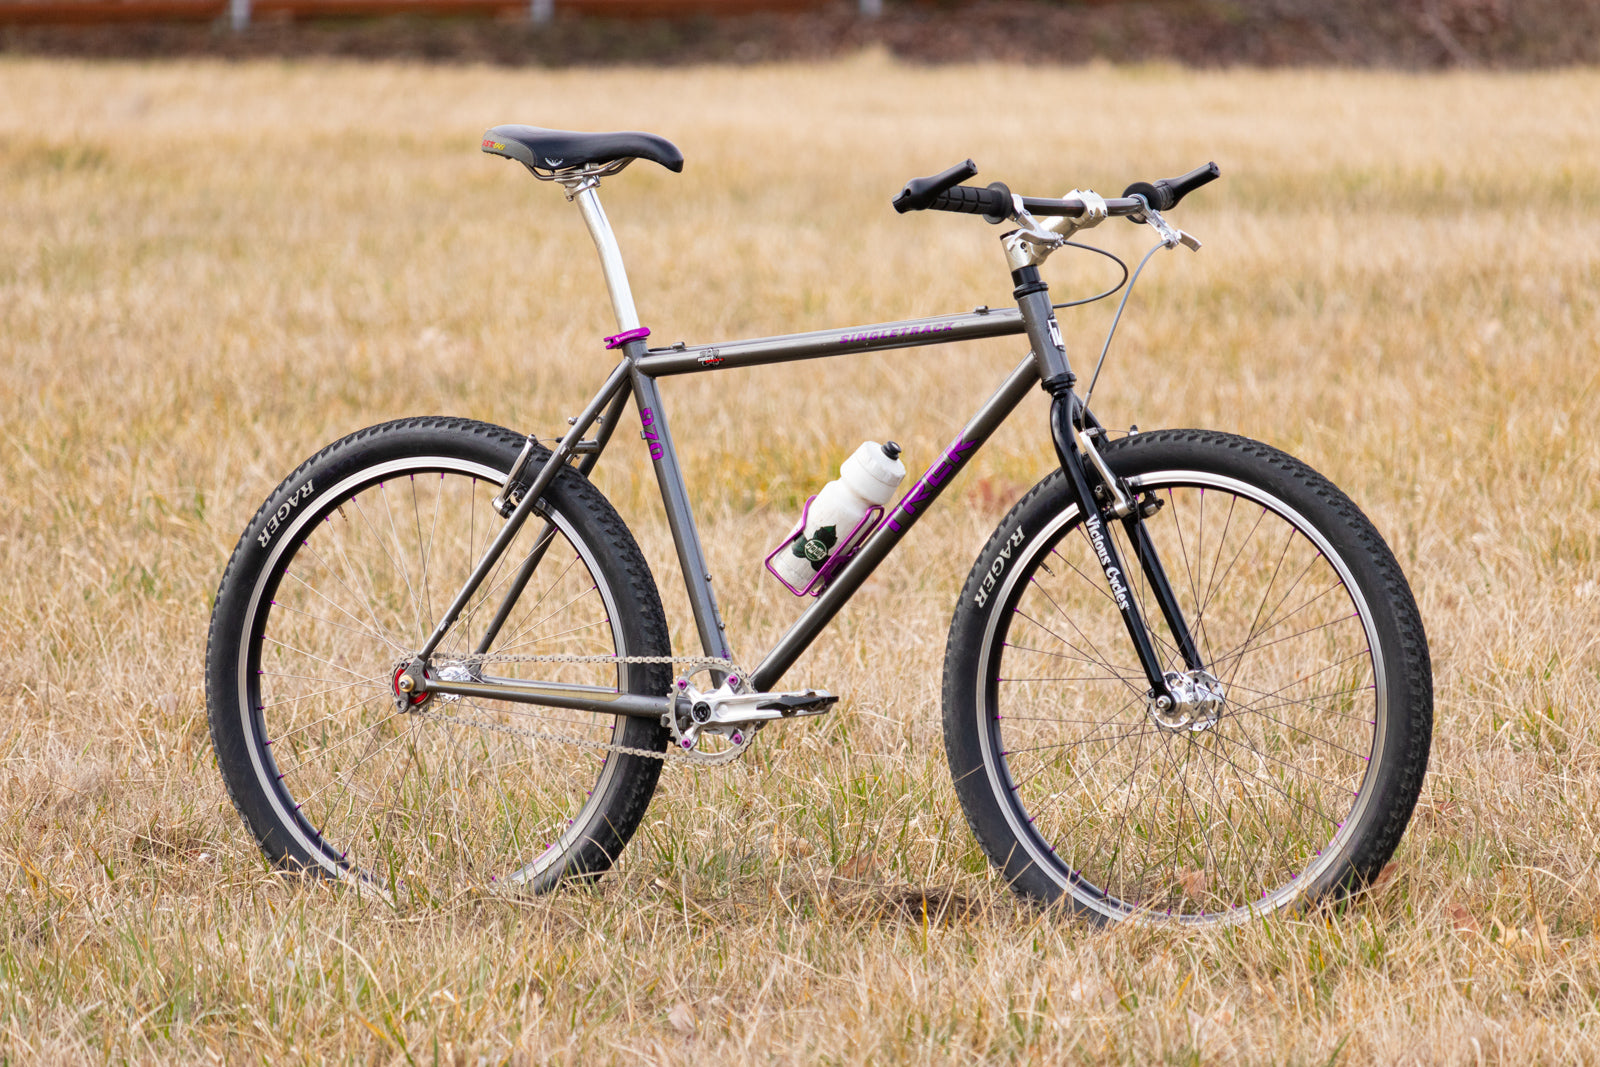 Bling Build: Gernot's Trek 970 Singlespeed